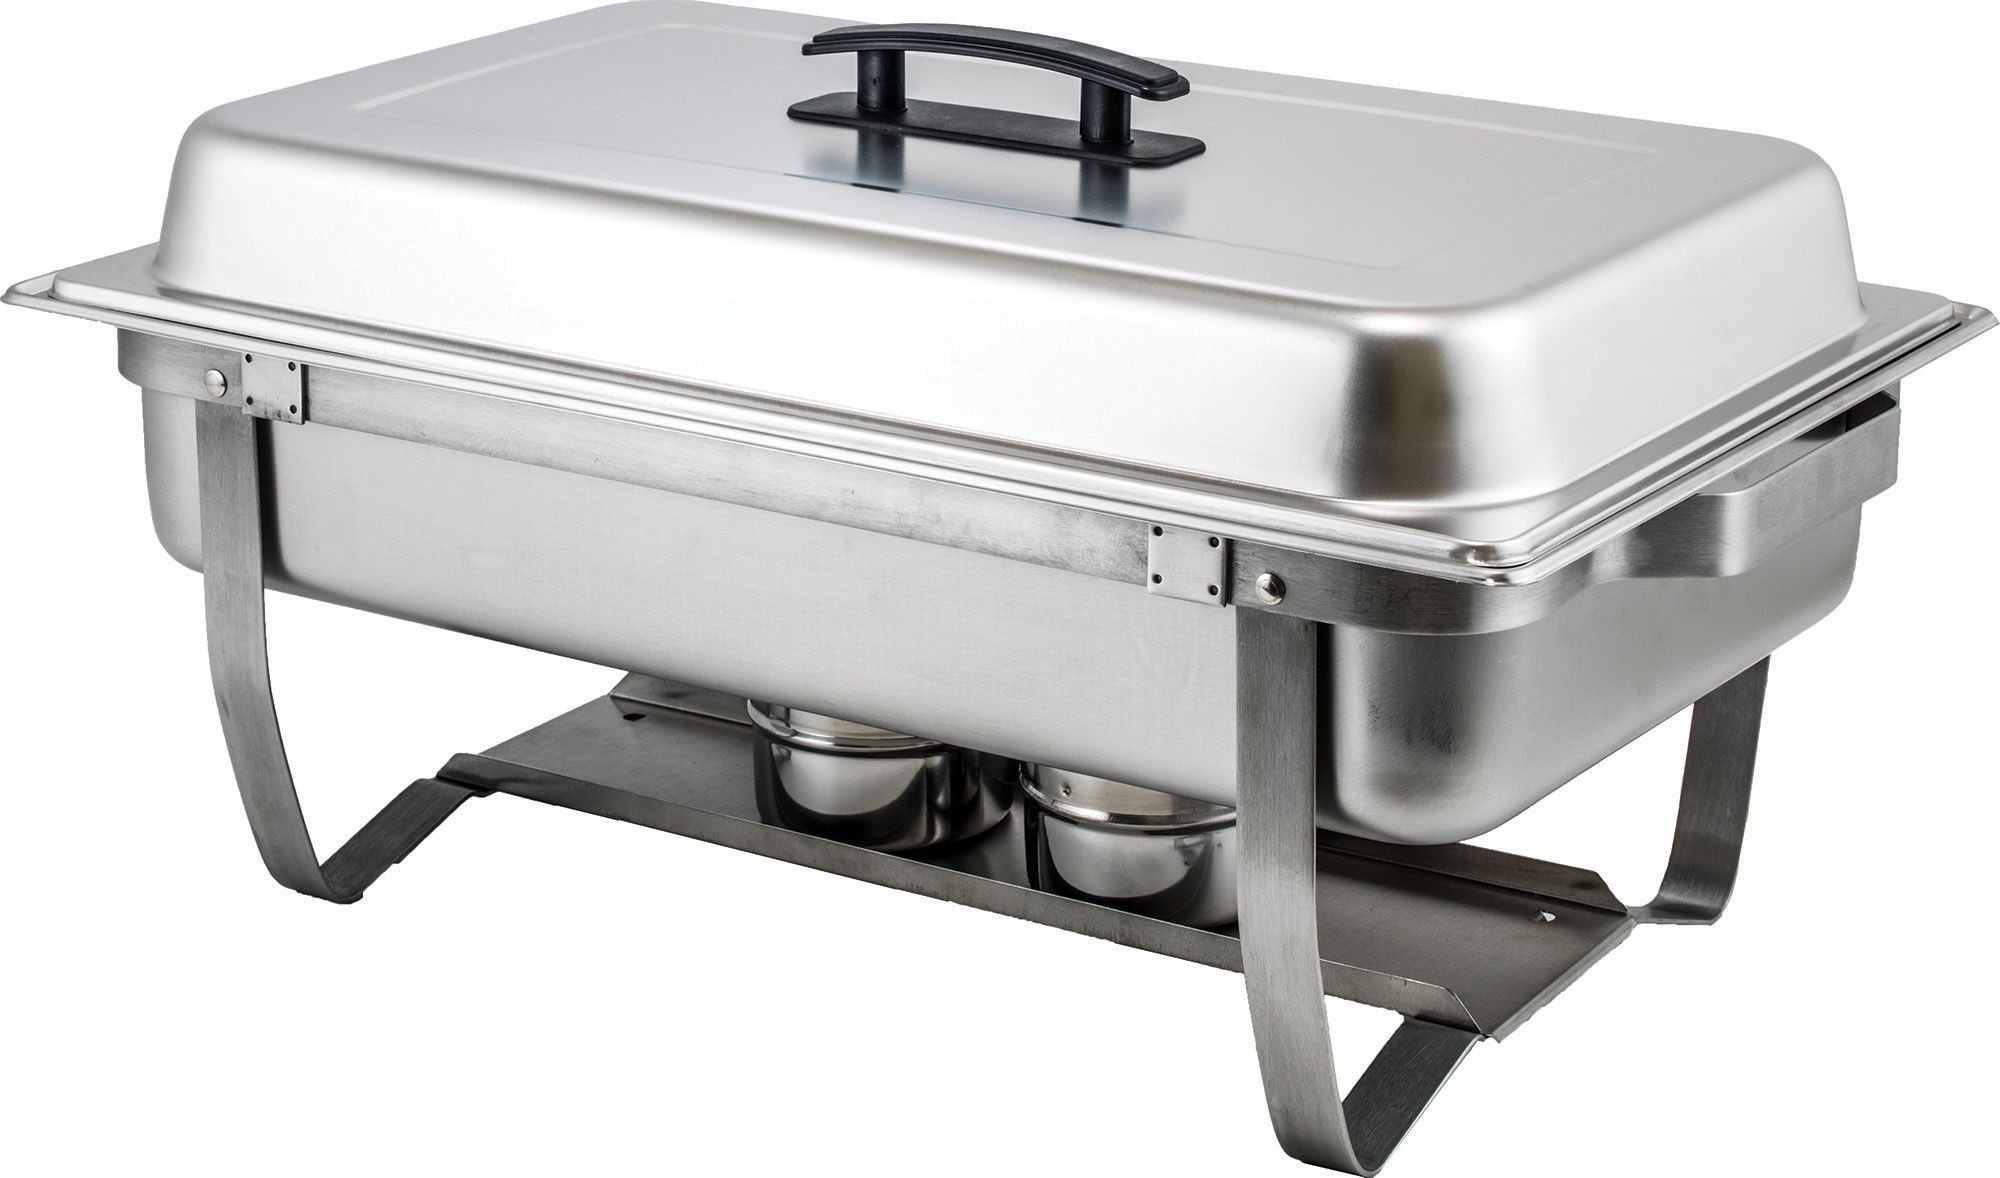 Winco C-4080 Full Size 8 Qt. Stainless Steel Chafer with Folding Frame